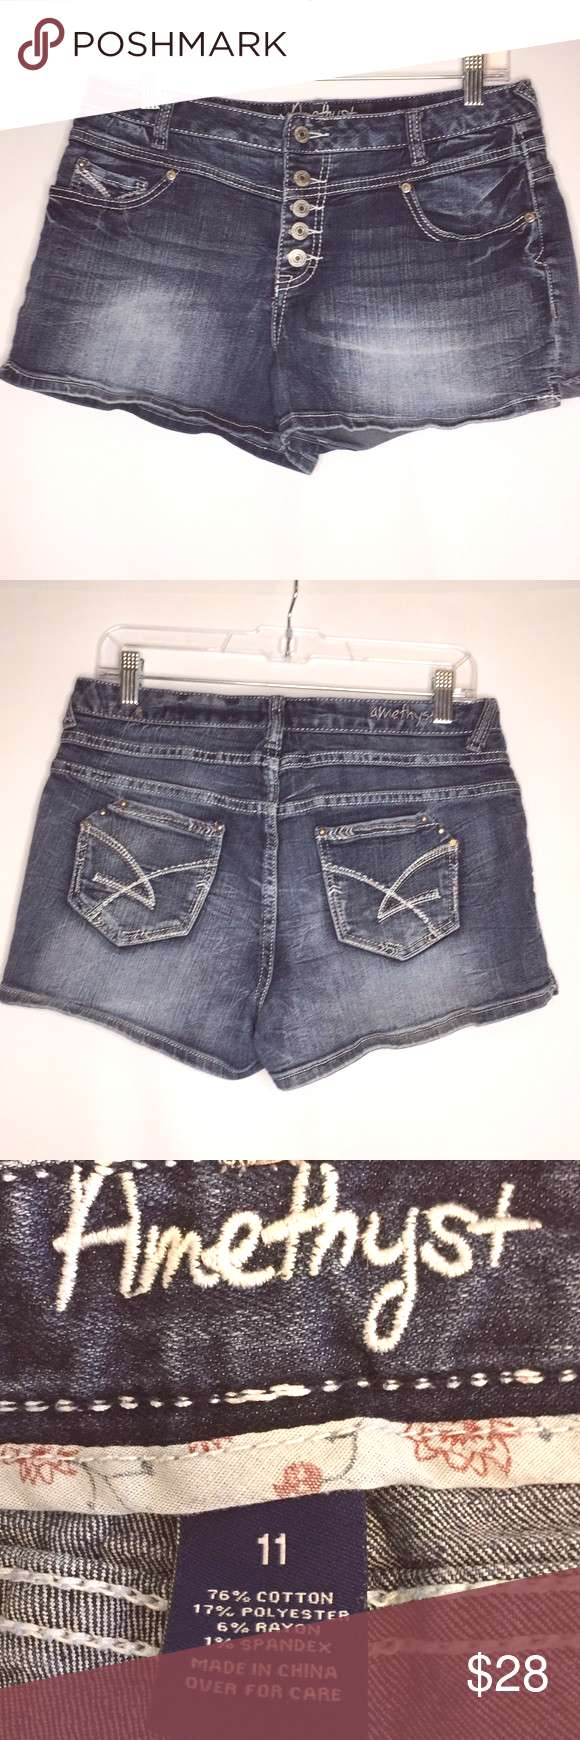 amethyst 11 button fly jean shorts Women's junior size 11 Amethyst jean shorts with a button fly.